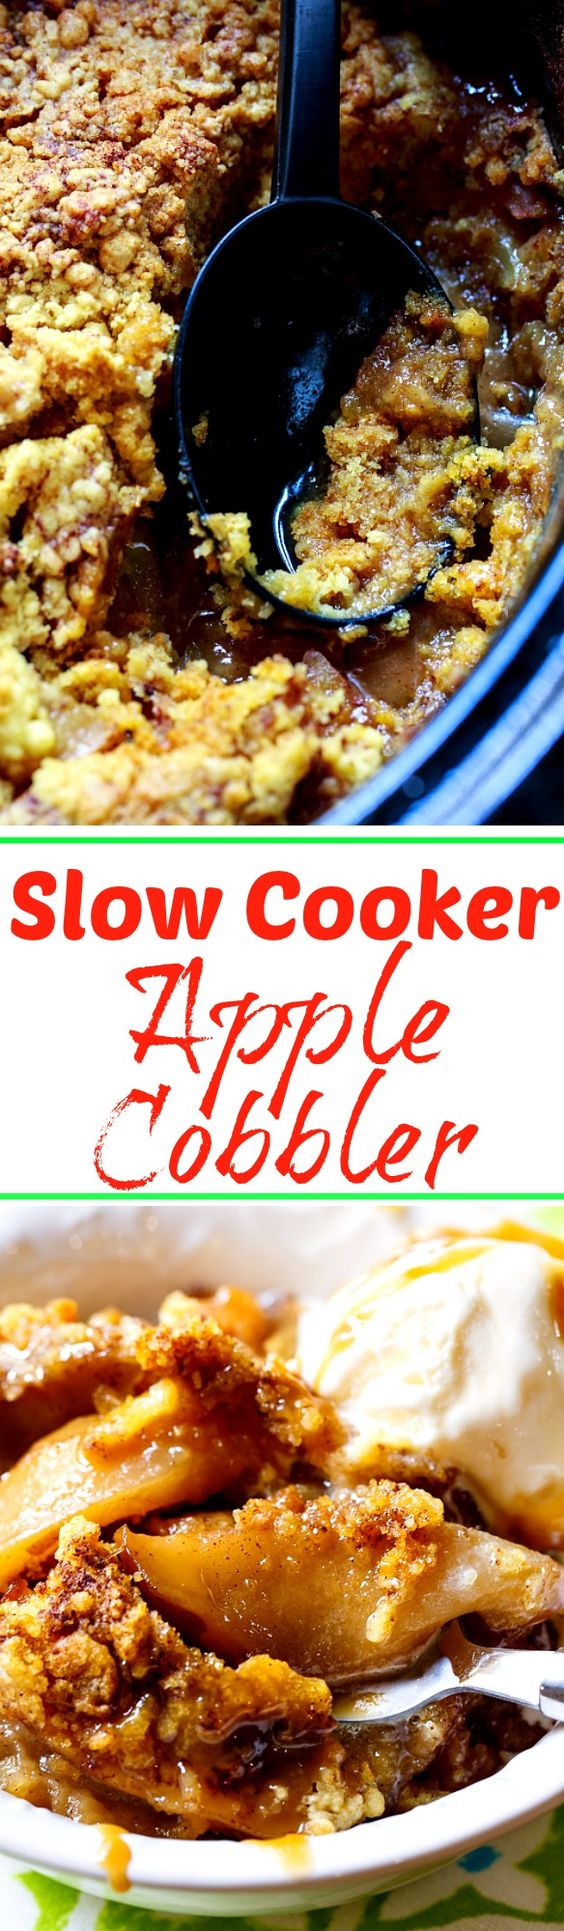 Slow Cooker Apple Cobbler. Only a few ingredients needed to make this delicious fall dessert!